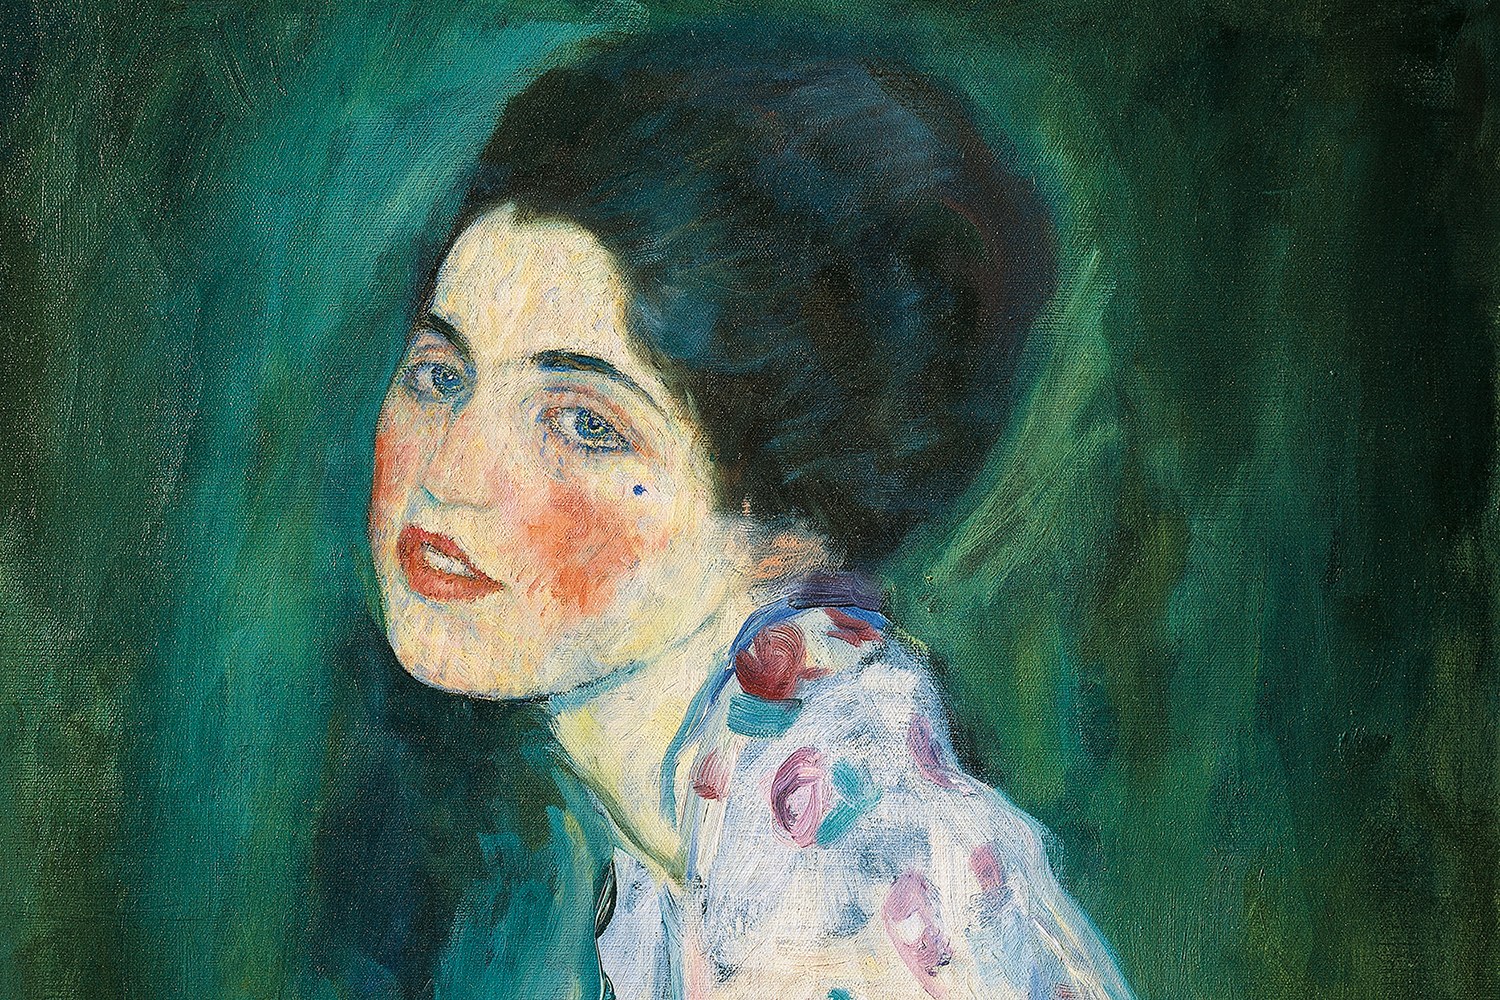 Klimt's Portrait of a Lady